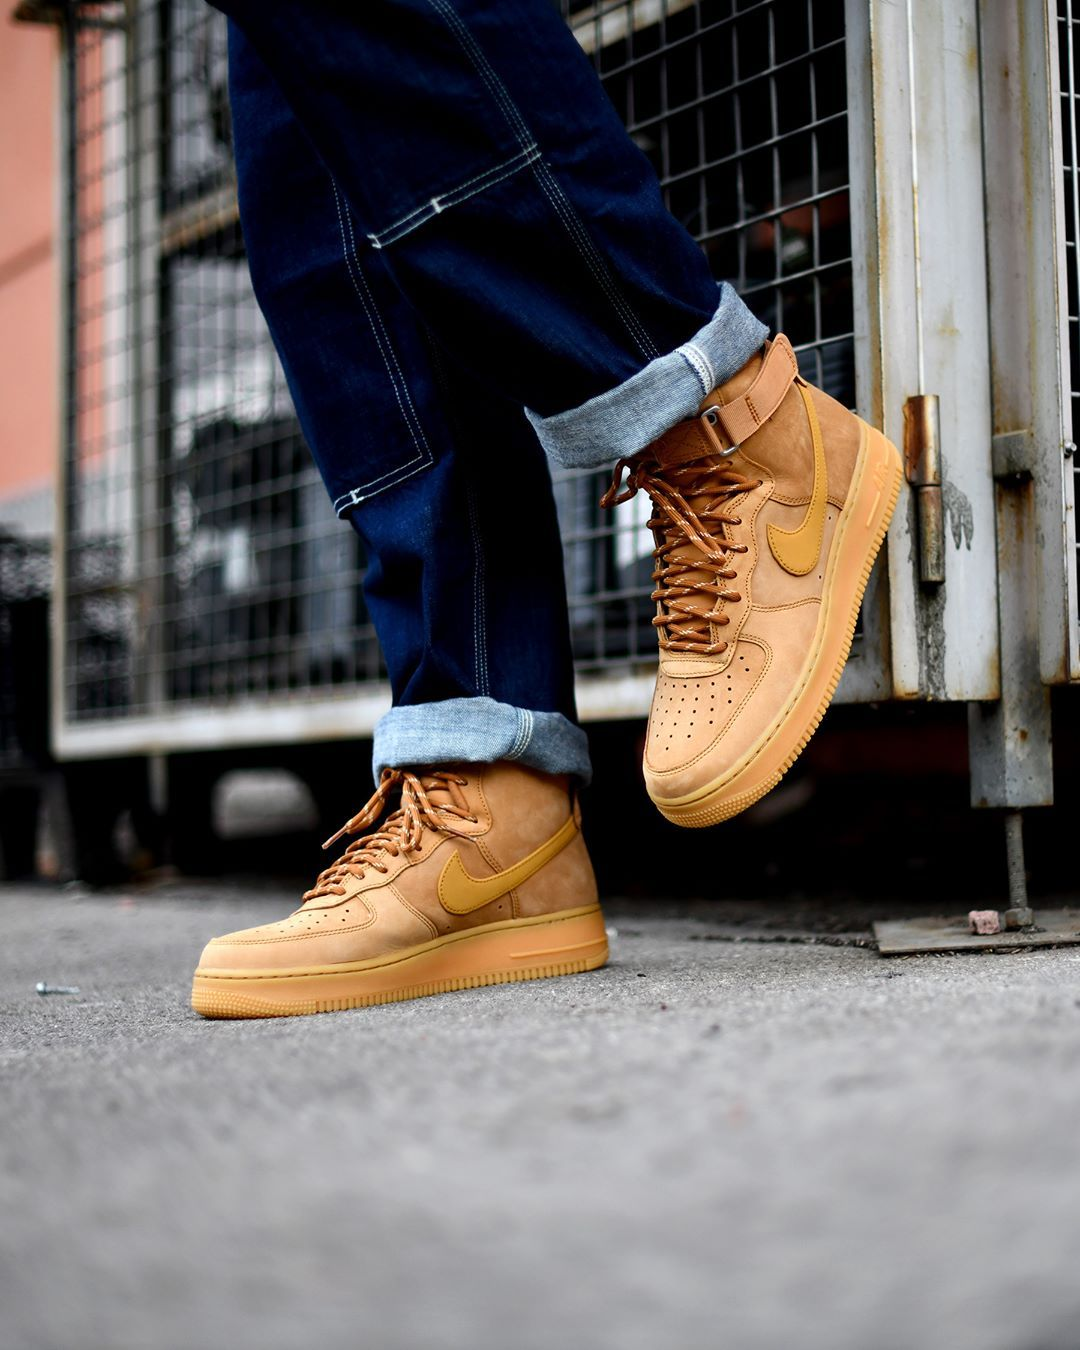 Nike Air Force 1 High 07 Flax Available Online Available